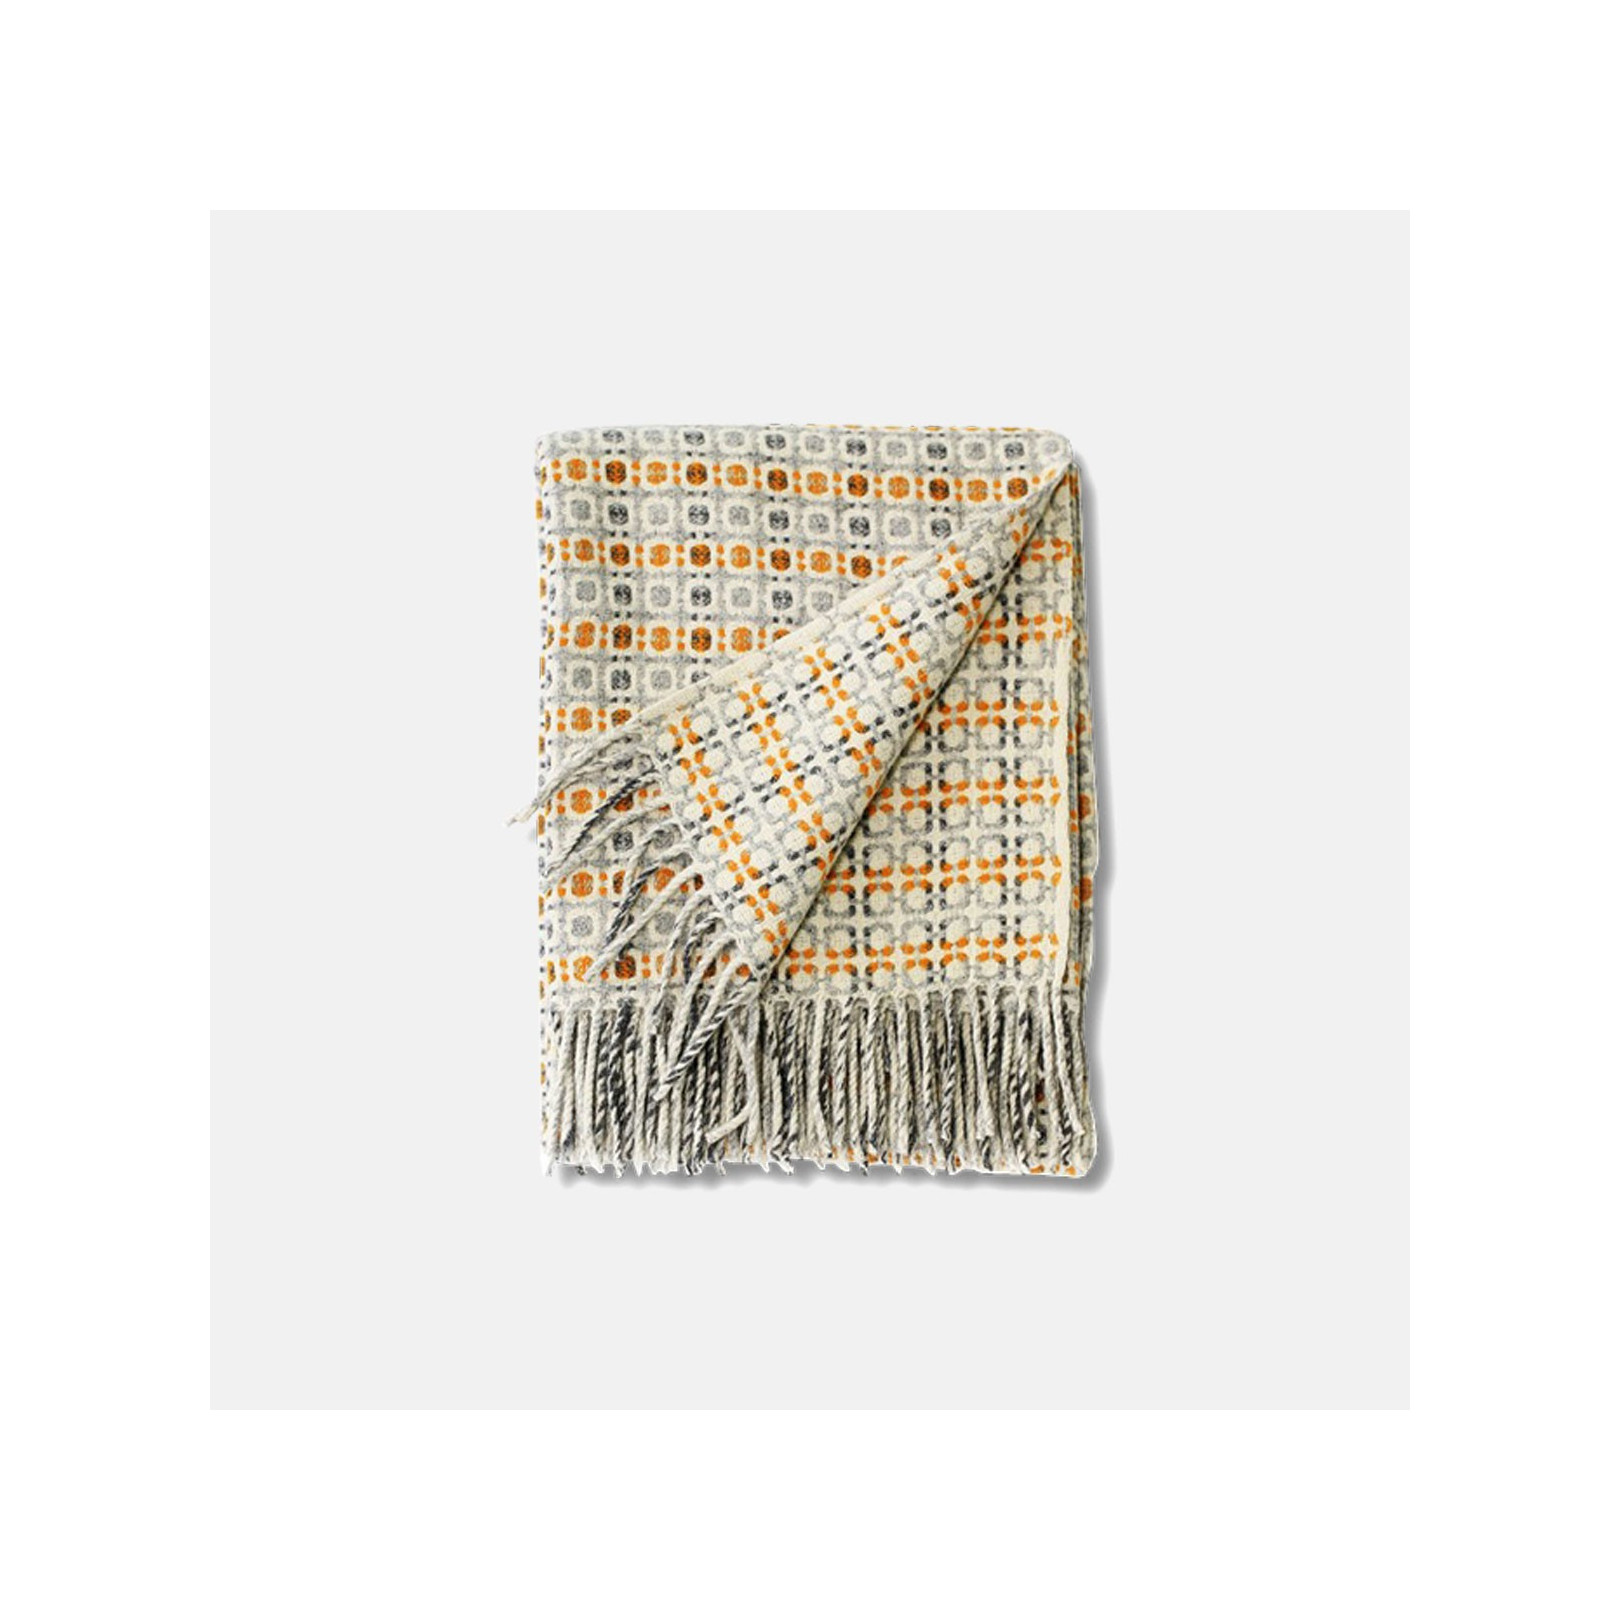 Plaid Bulles gris/ocre